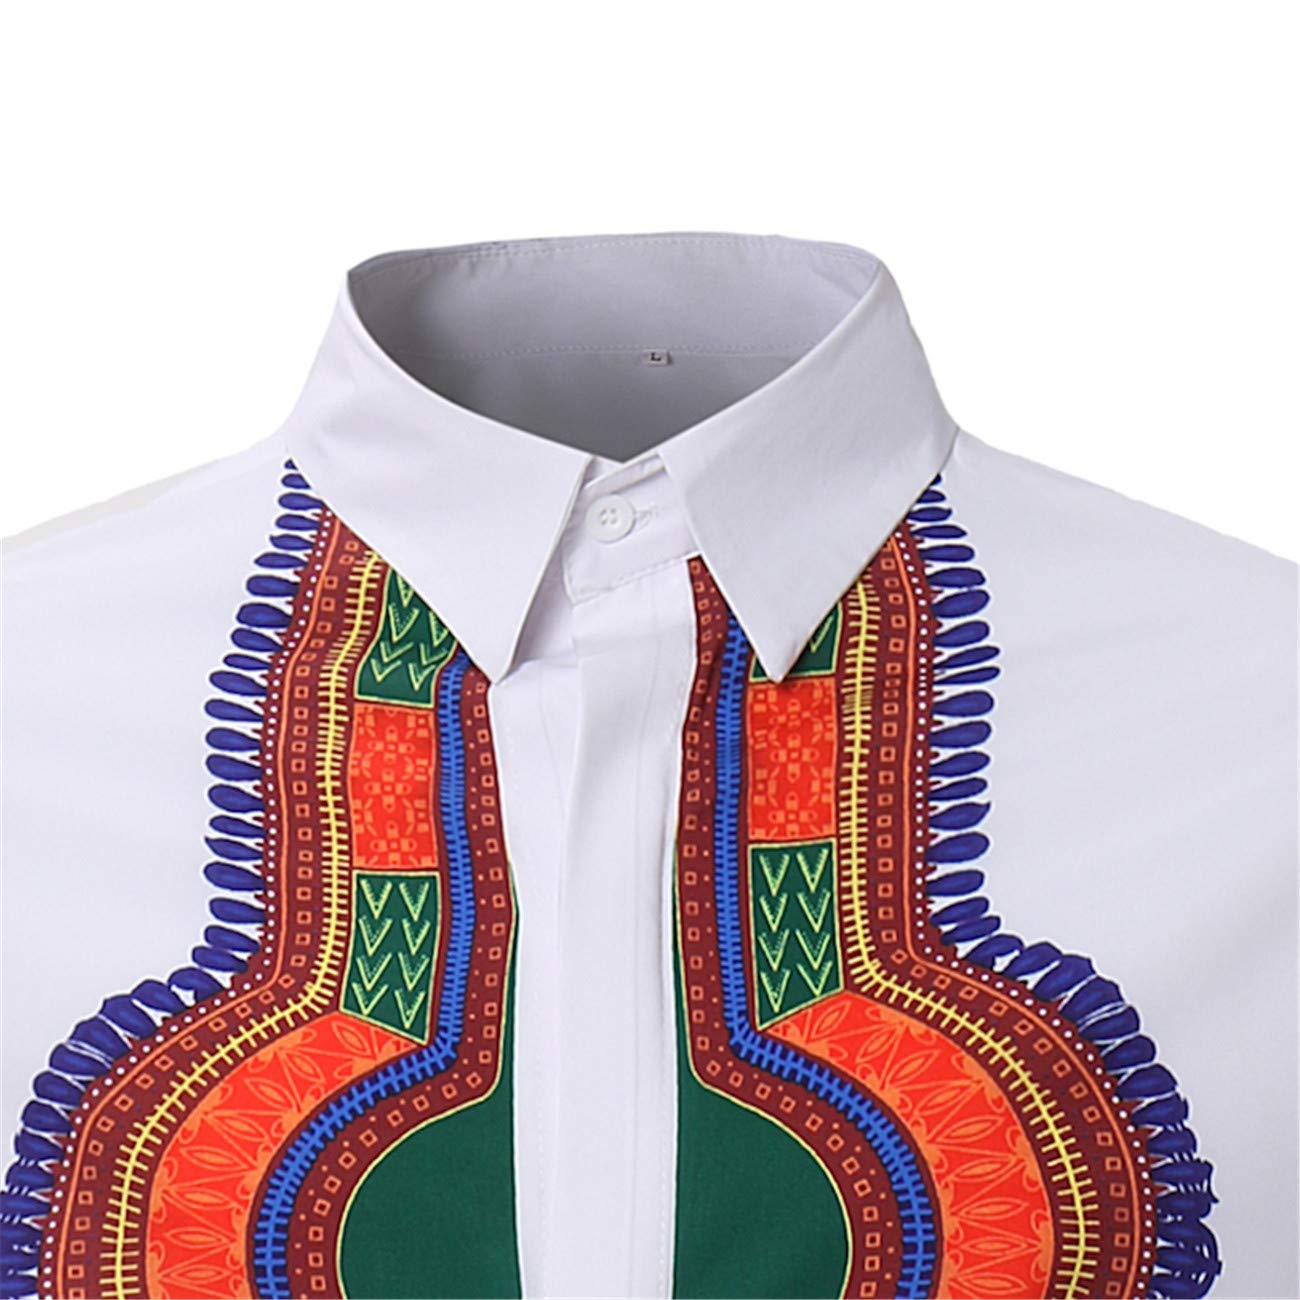 Mens Long-Sleeved Ethnic African Style Floral Printed Leisure and Fashion Shirt